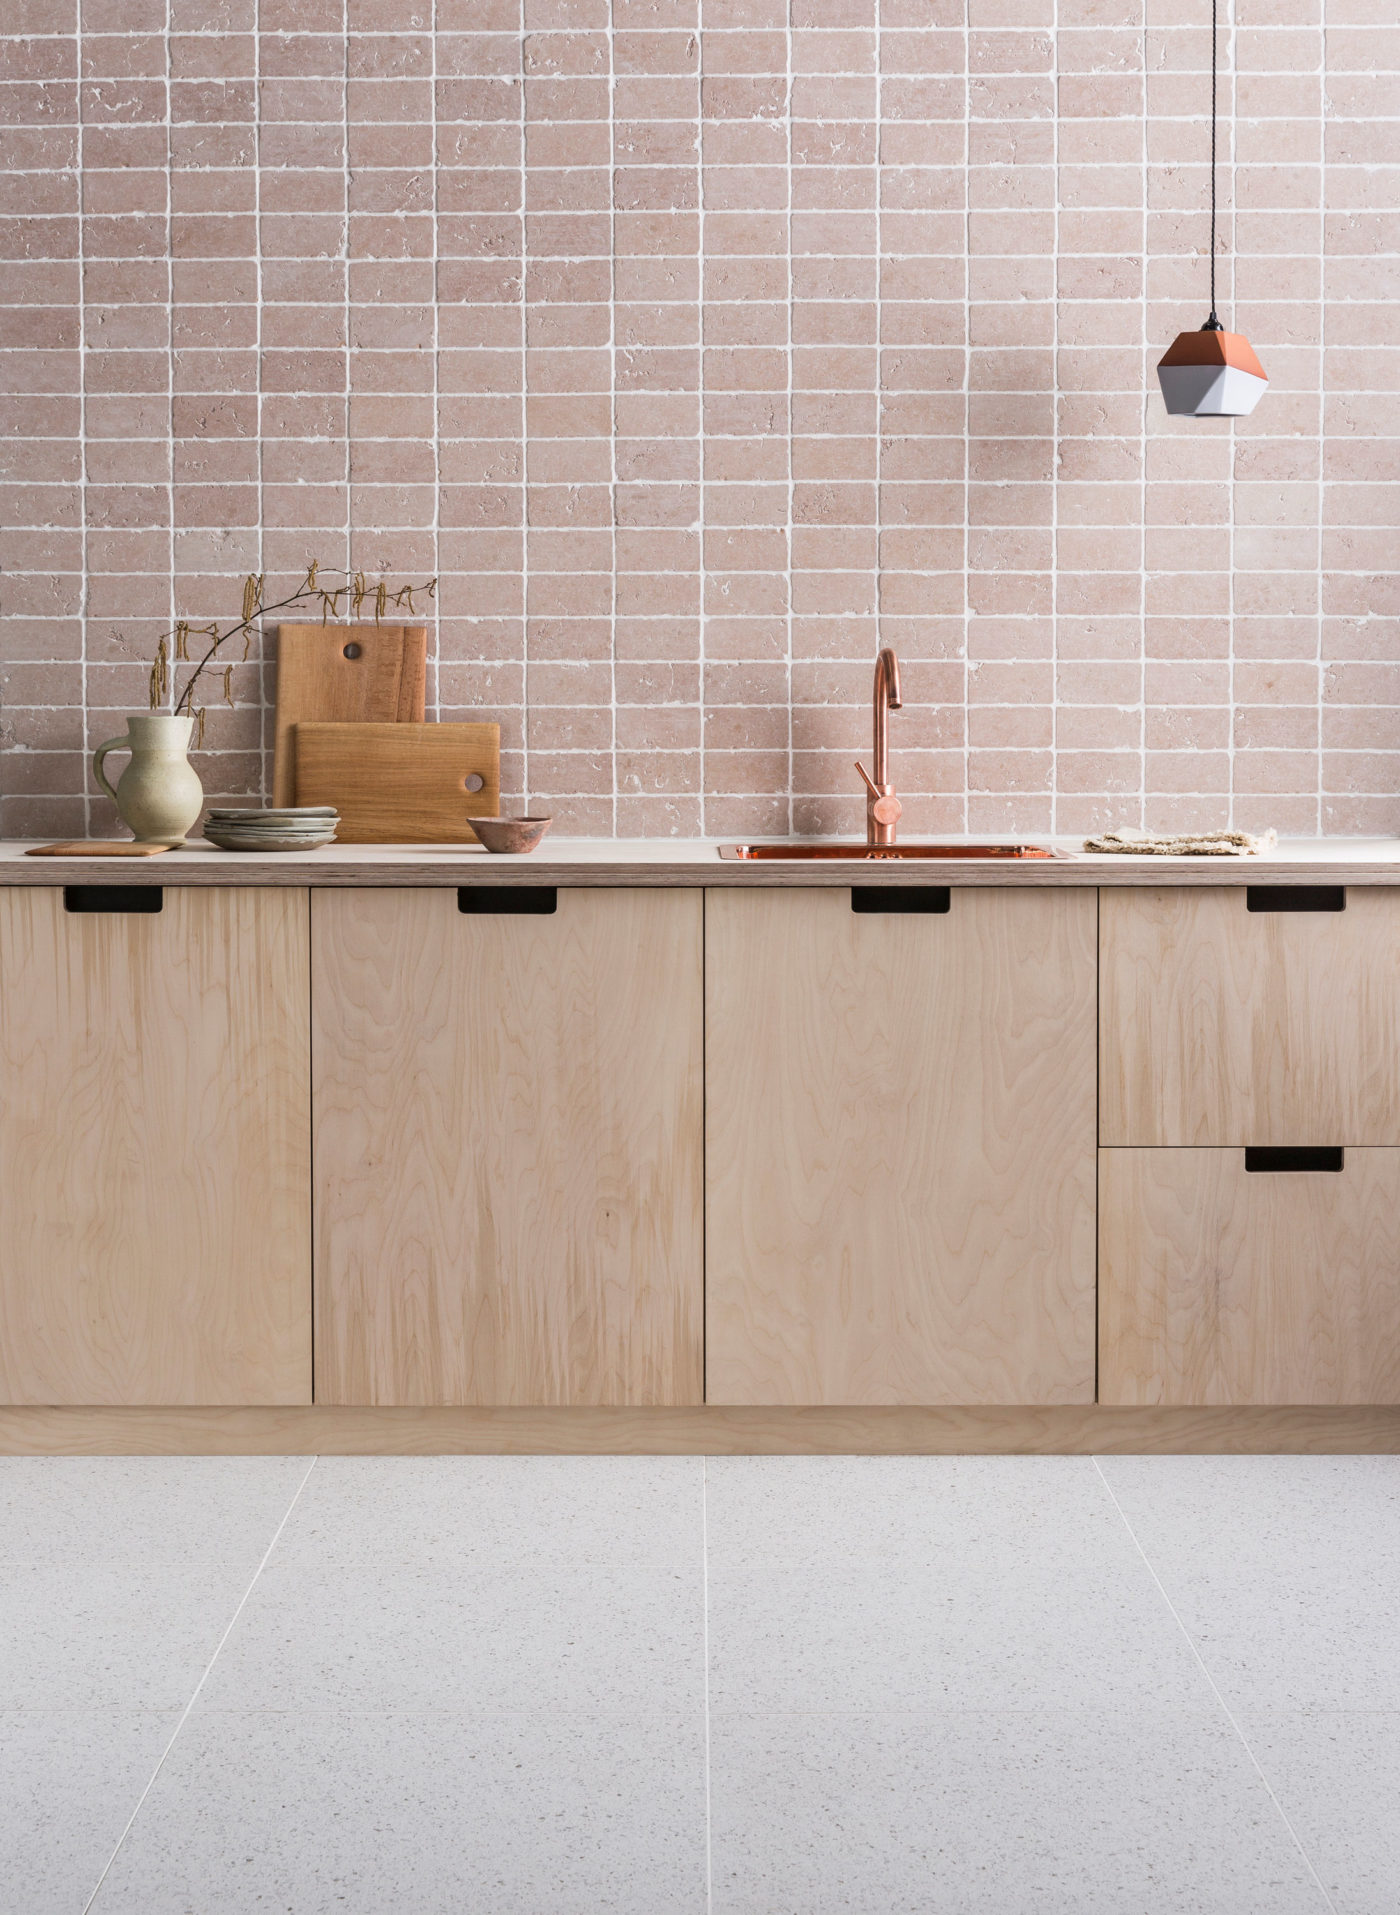 It's Official: These Are the 8 Modern Kitchen Backsplash Ideas That You Need to Try